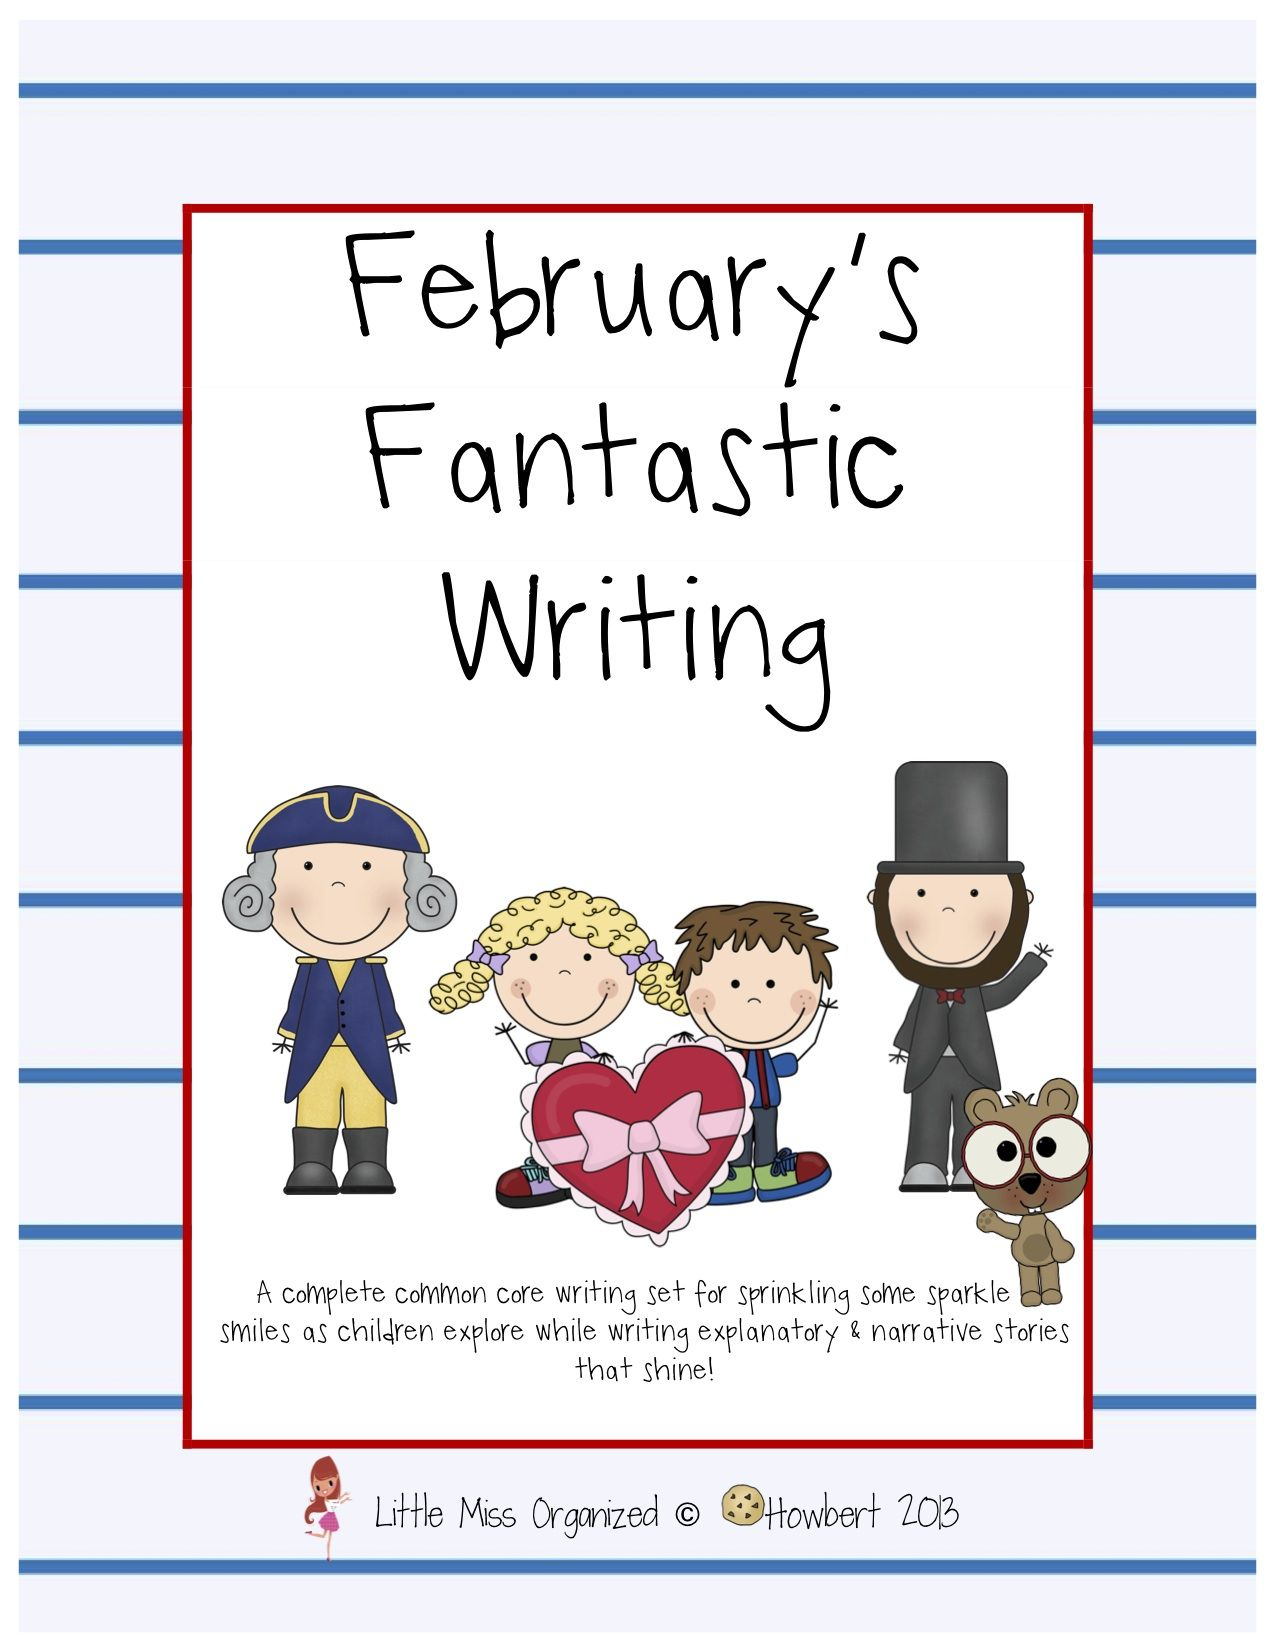 Writing Explanatory Amp Narrative Stories That Shine For